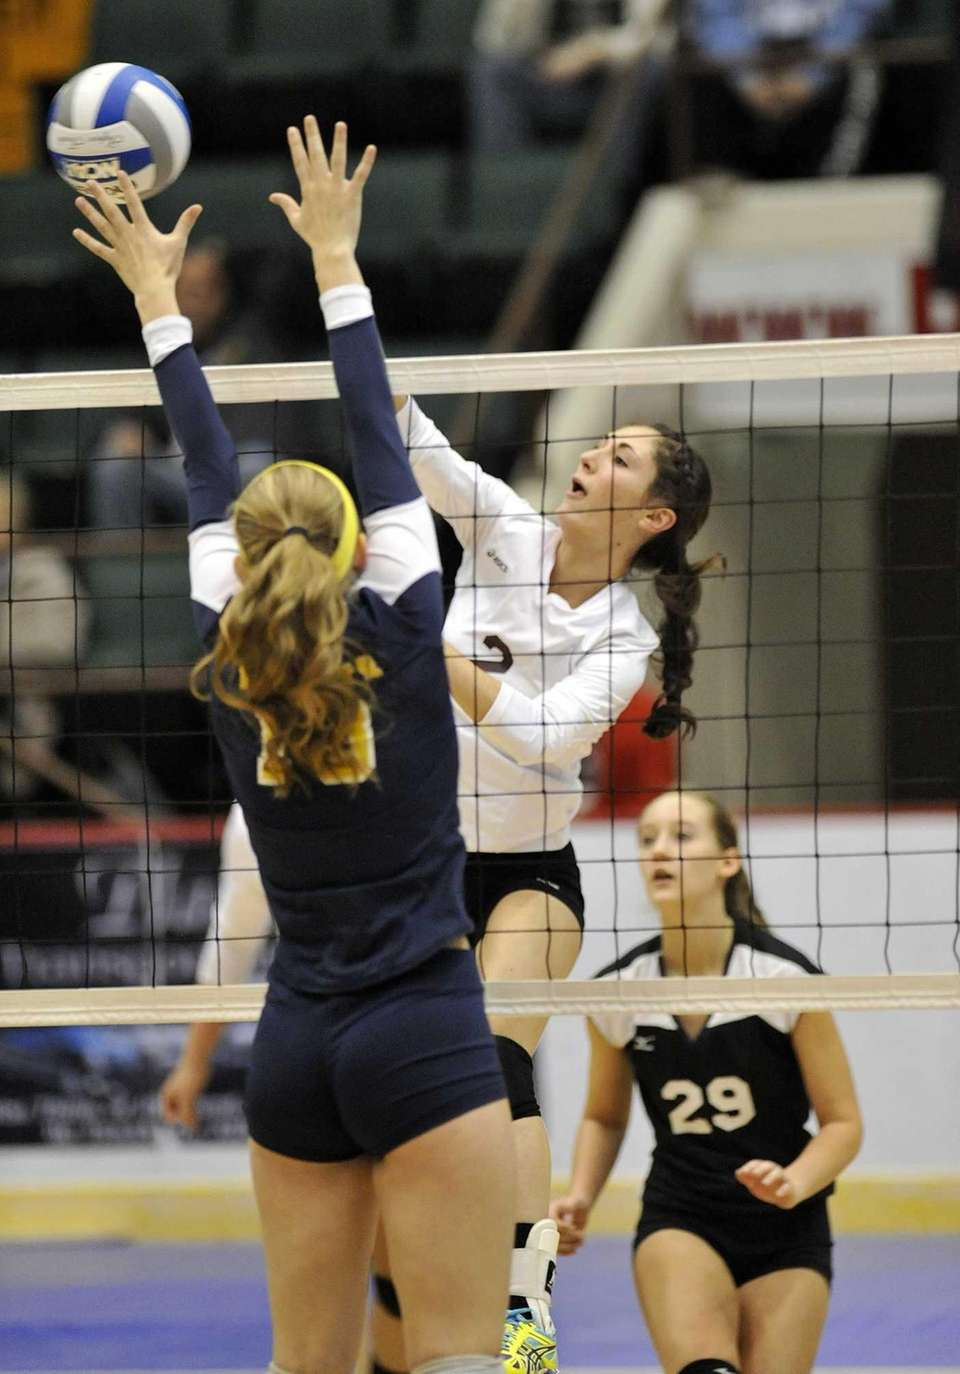 Kings Park's Joelle Goldstein (2) hits the ball